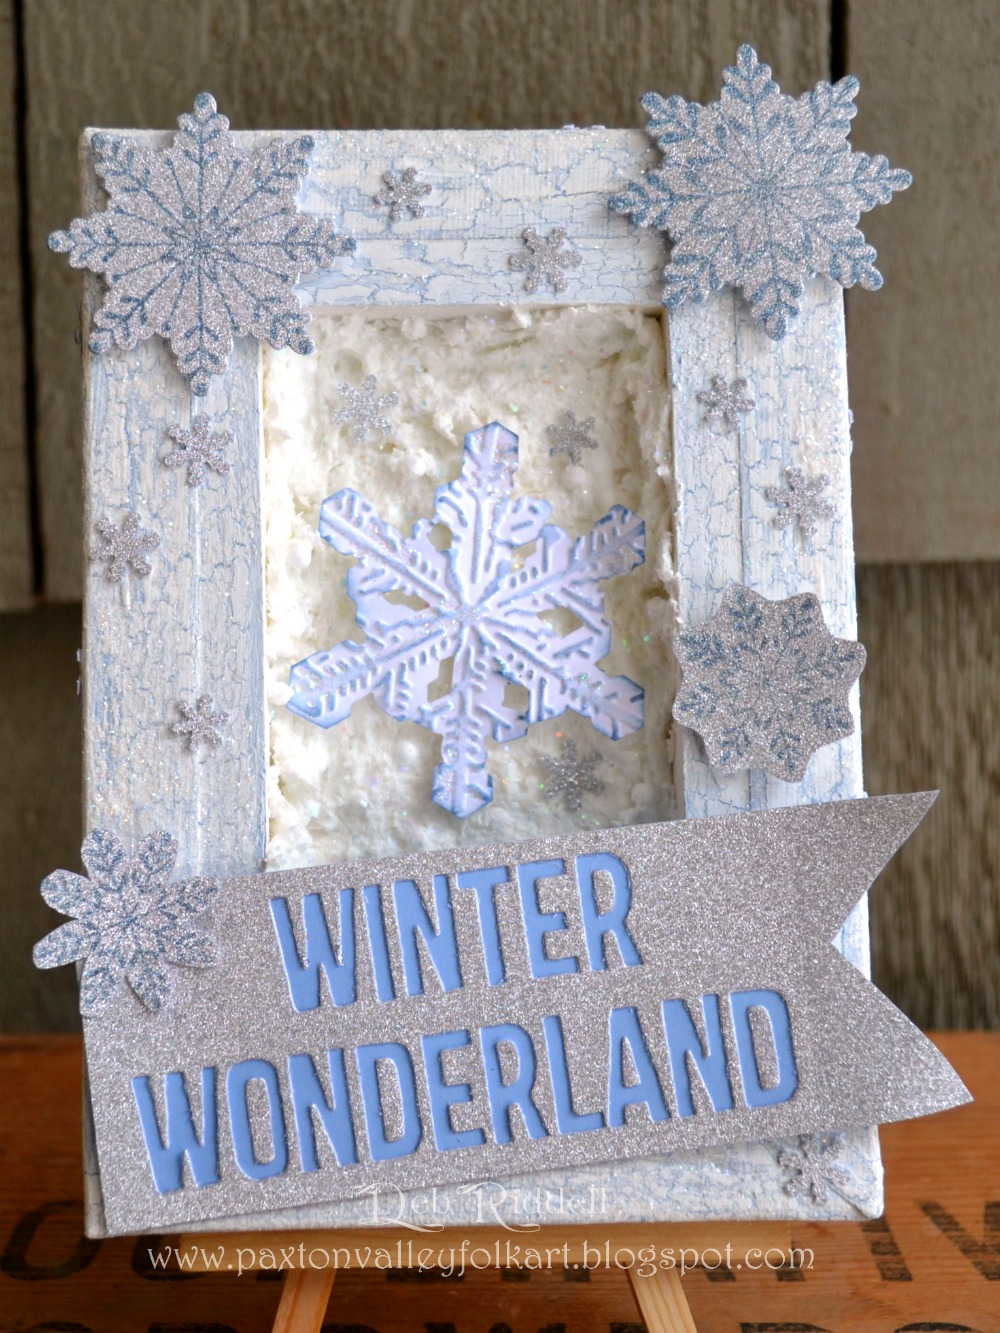 Hello, Decemberu0027s Guest Designer Deb Riddell From Paxton Valley Folk Art  Here To Share A Tutorial With You On How To Create This U0027Winter Wonderlandu0027  Reverse ...